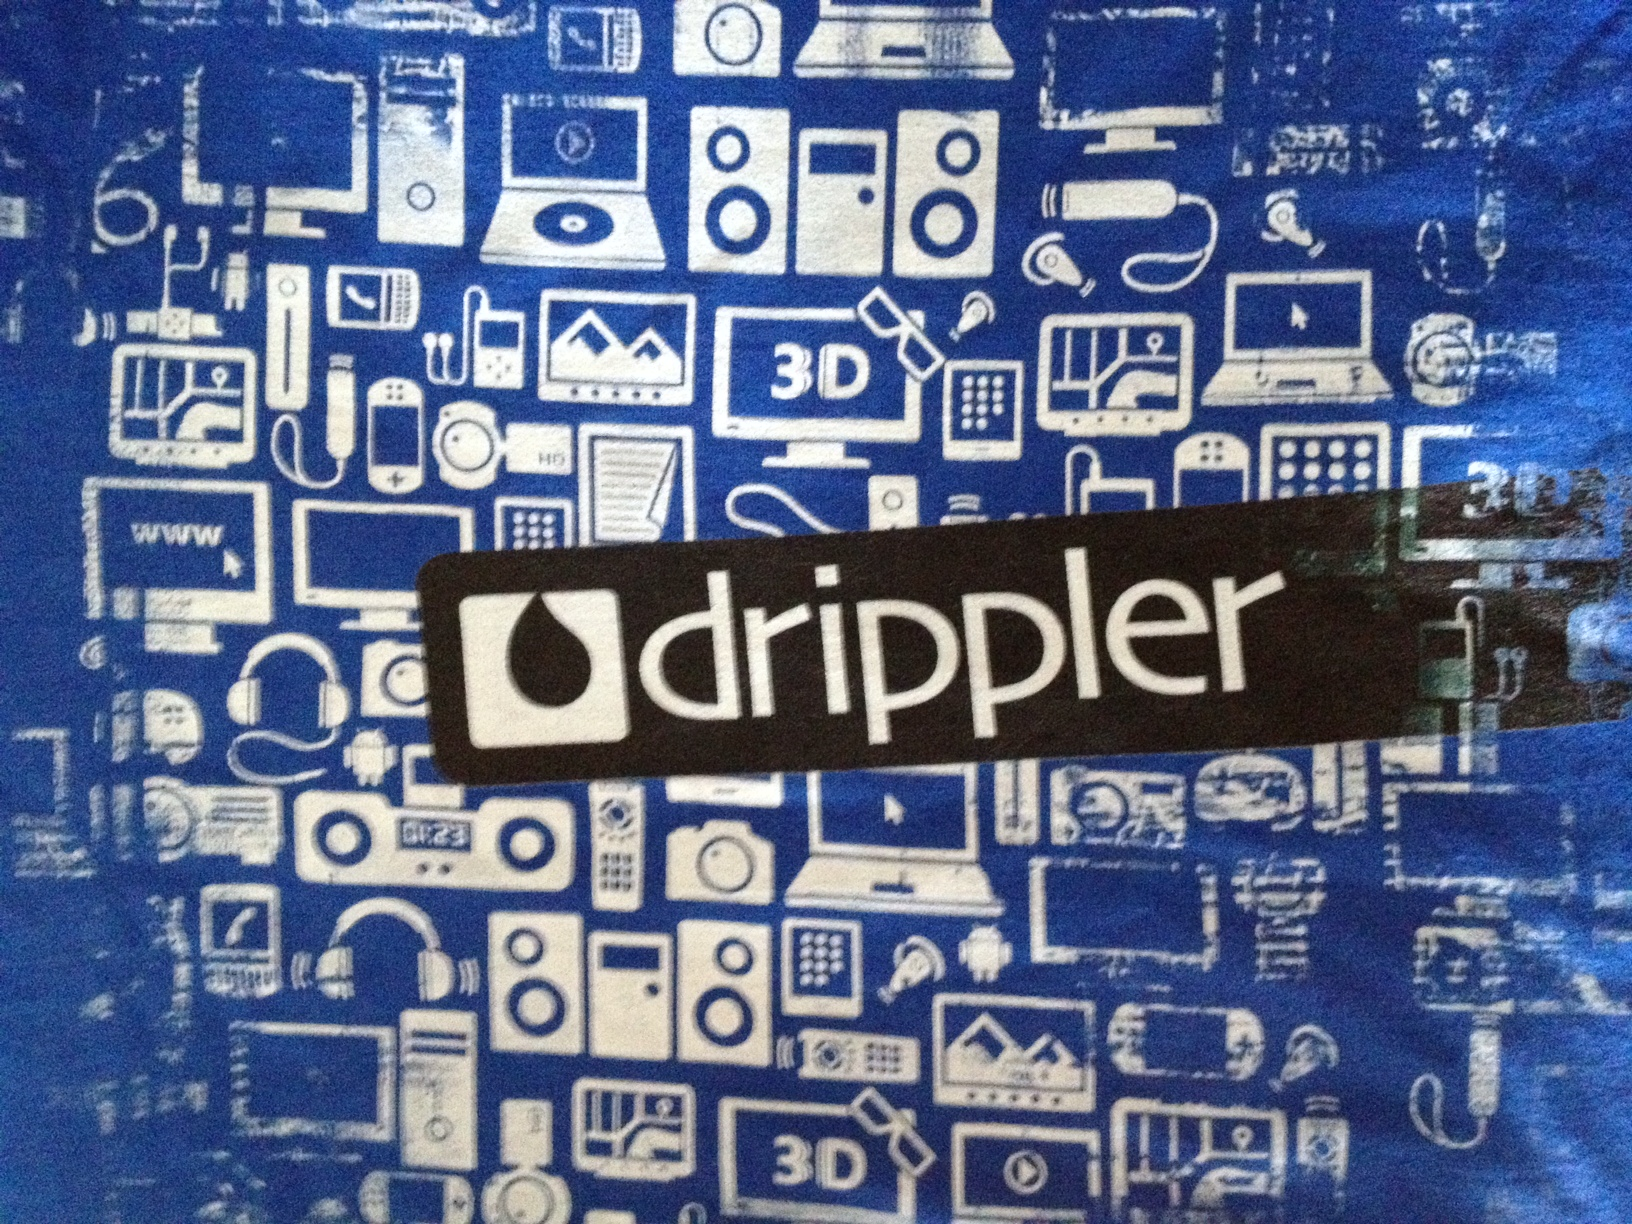 With 1.5 million downloads, Drippler's apps are a must-have for Android owners